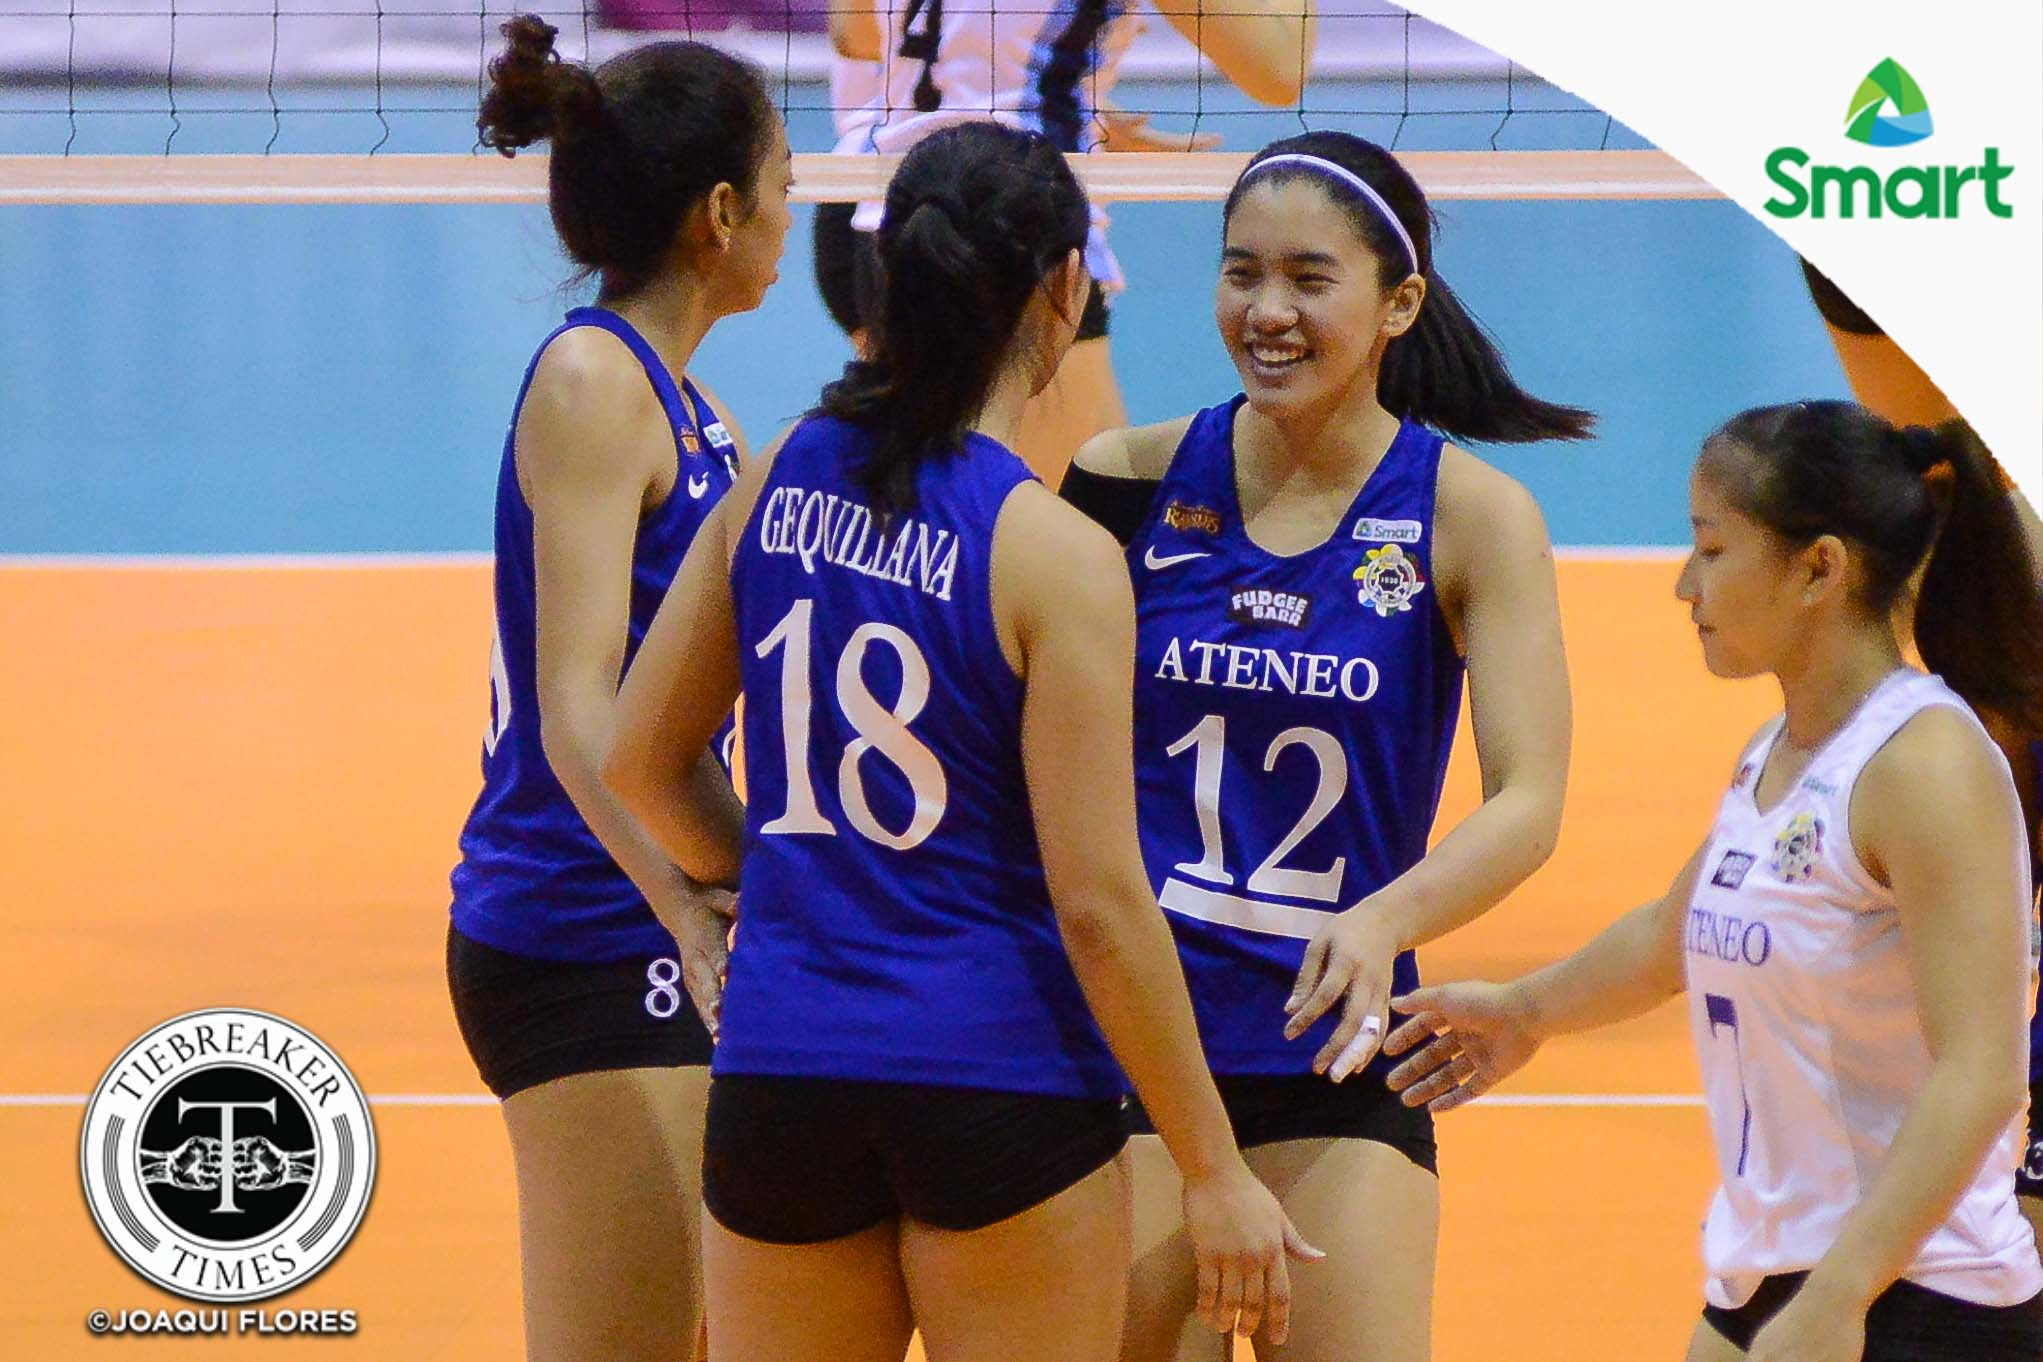 Tiebreaker Times Lady Eagles smash Galanza-less Lady Falcons ADMU AdU News UAAP Volleyball  UAAP Season 79 Women's Volleyball UAAP Season 79 Sherwin Meneses Michelle Morente Kim Gequillana Joy Dacoron Jia Morado Gyzelle Tan Ateneo Women's Volleyball Airess Padda Adamson Women's Volleyball